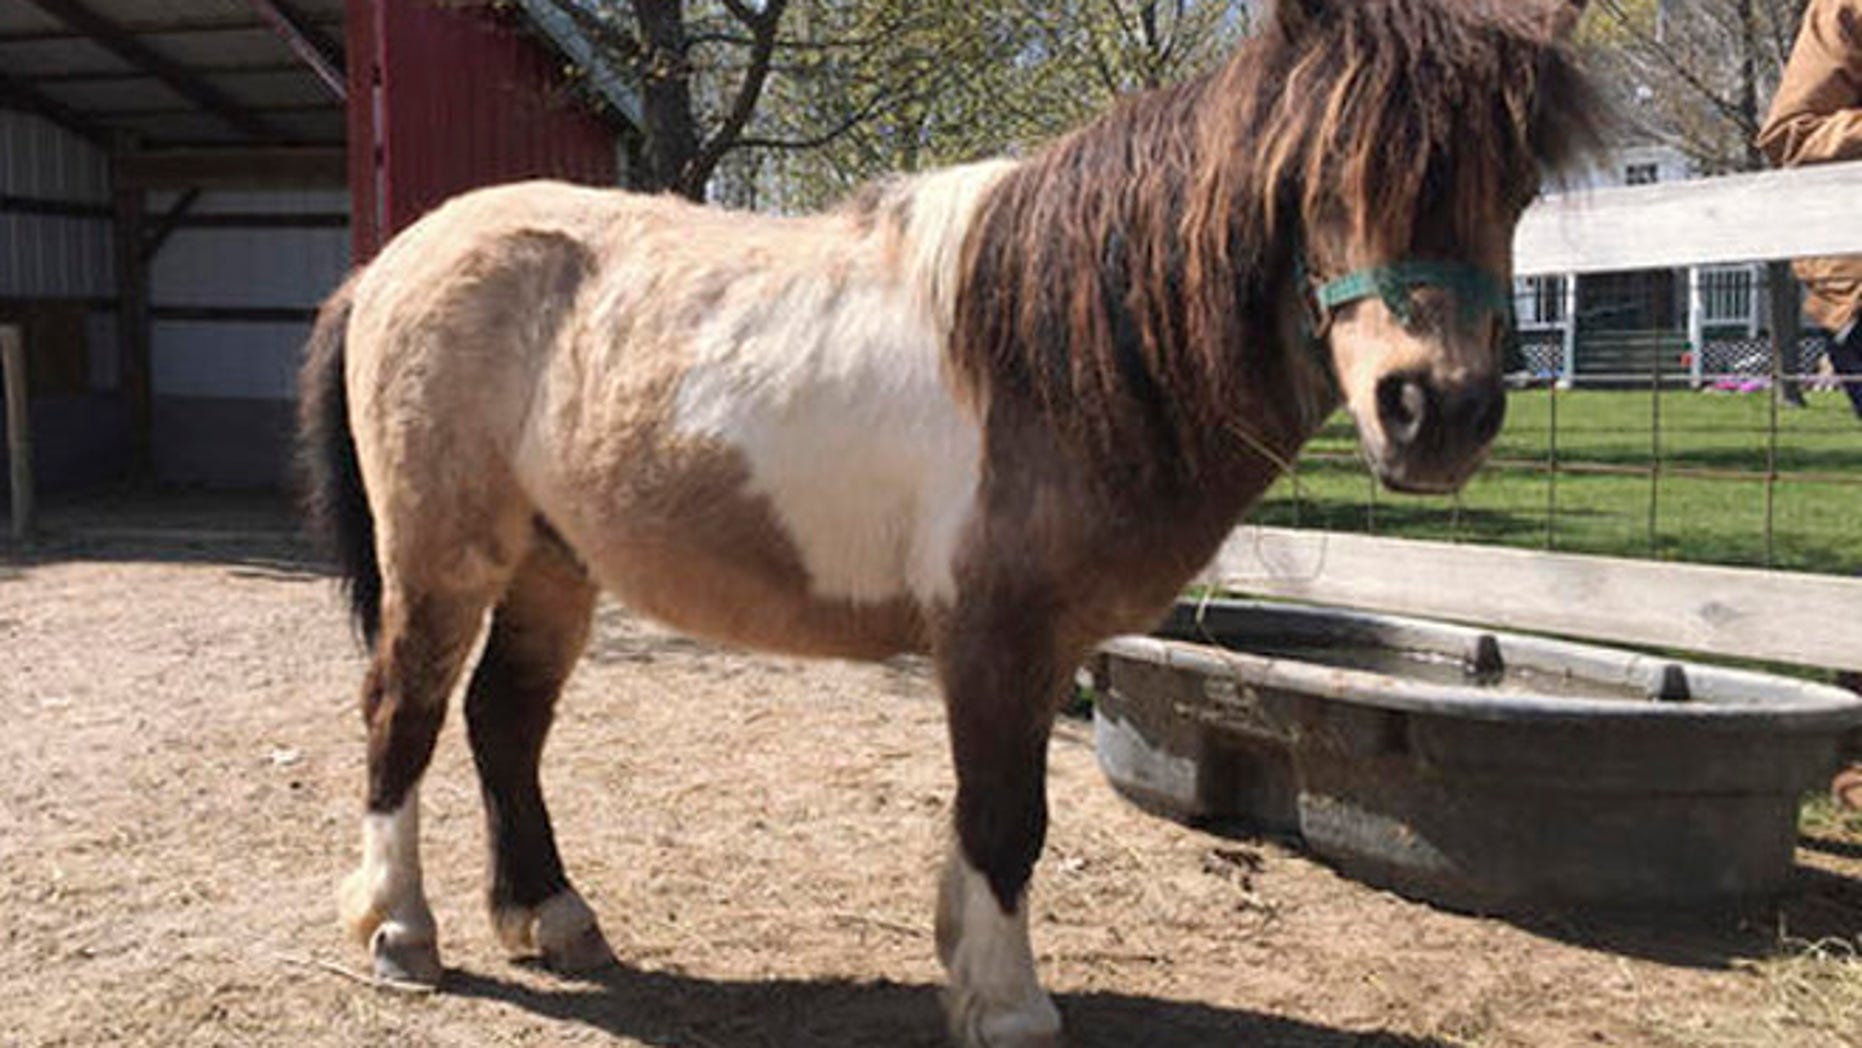 This May 9, 2016 photo, shows Samson, a miniature pony in Kenockee Township, Mich., with his tail cutoff. Two miniature horses were found by their owners Thursday, May 5, 2016 with the hair on their tails hacked off.